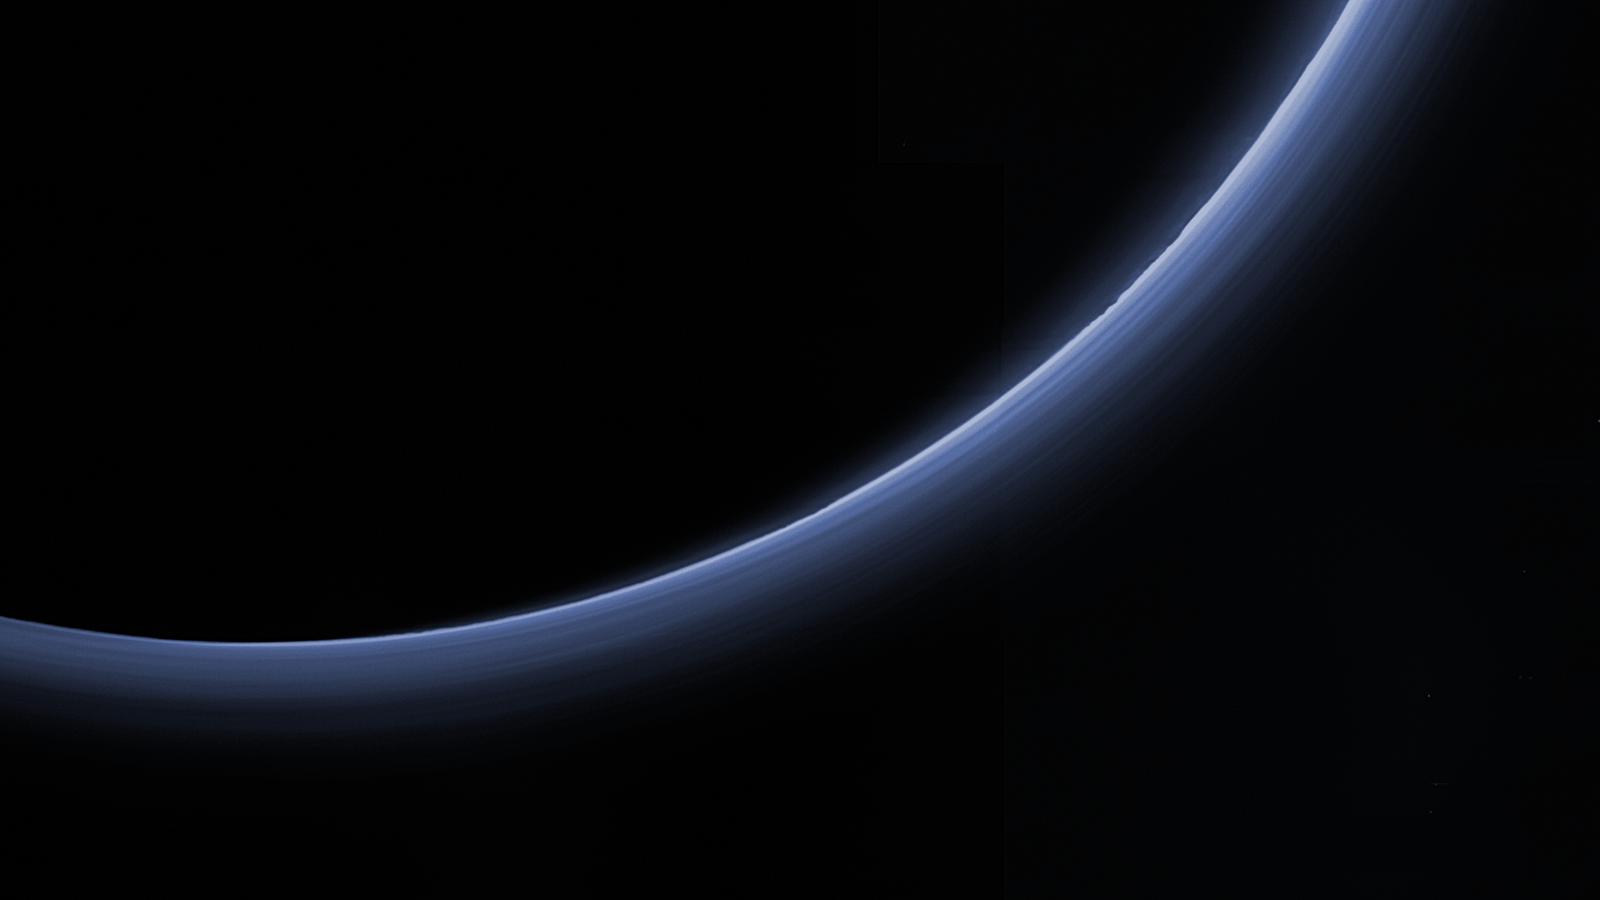 Pluto. Image credit: NASA/New Horizons